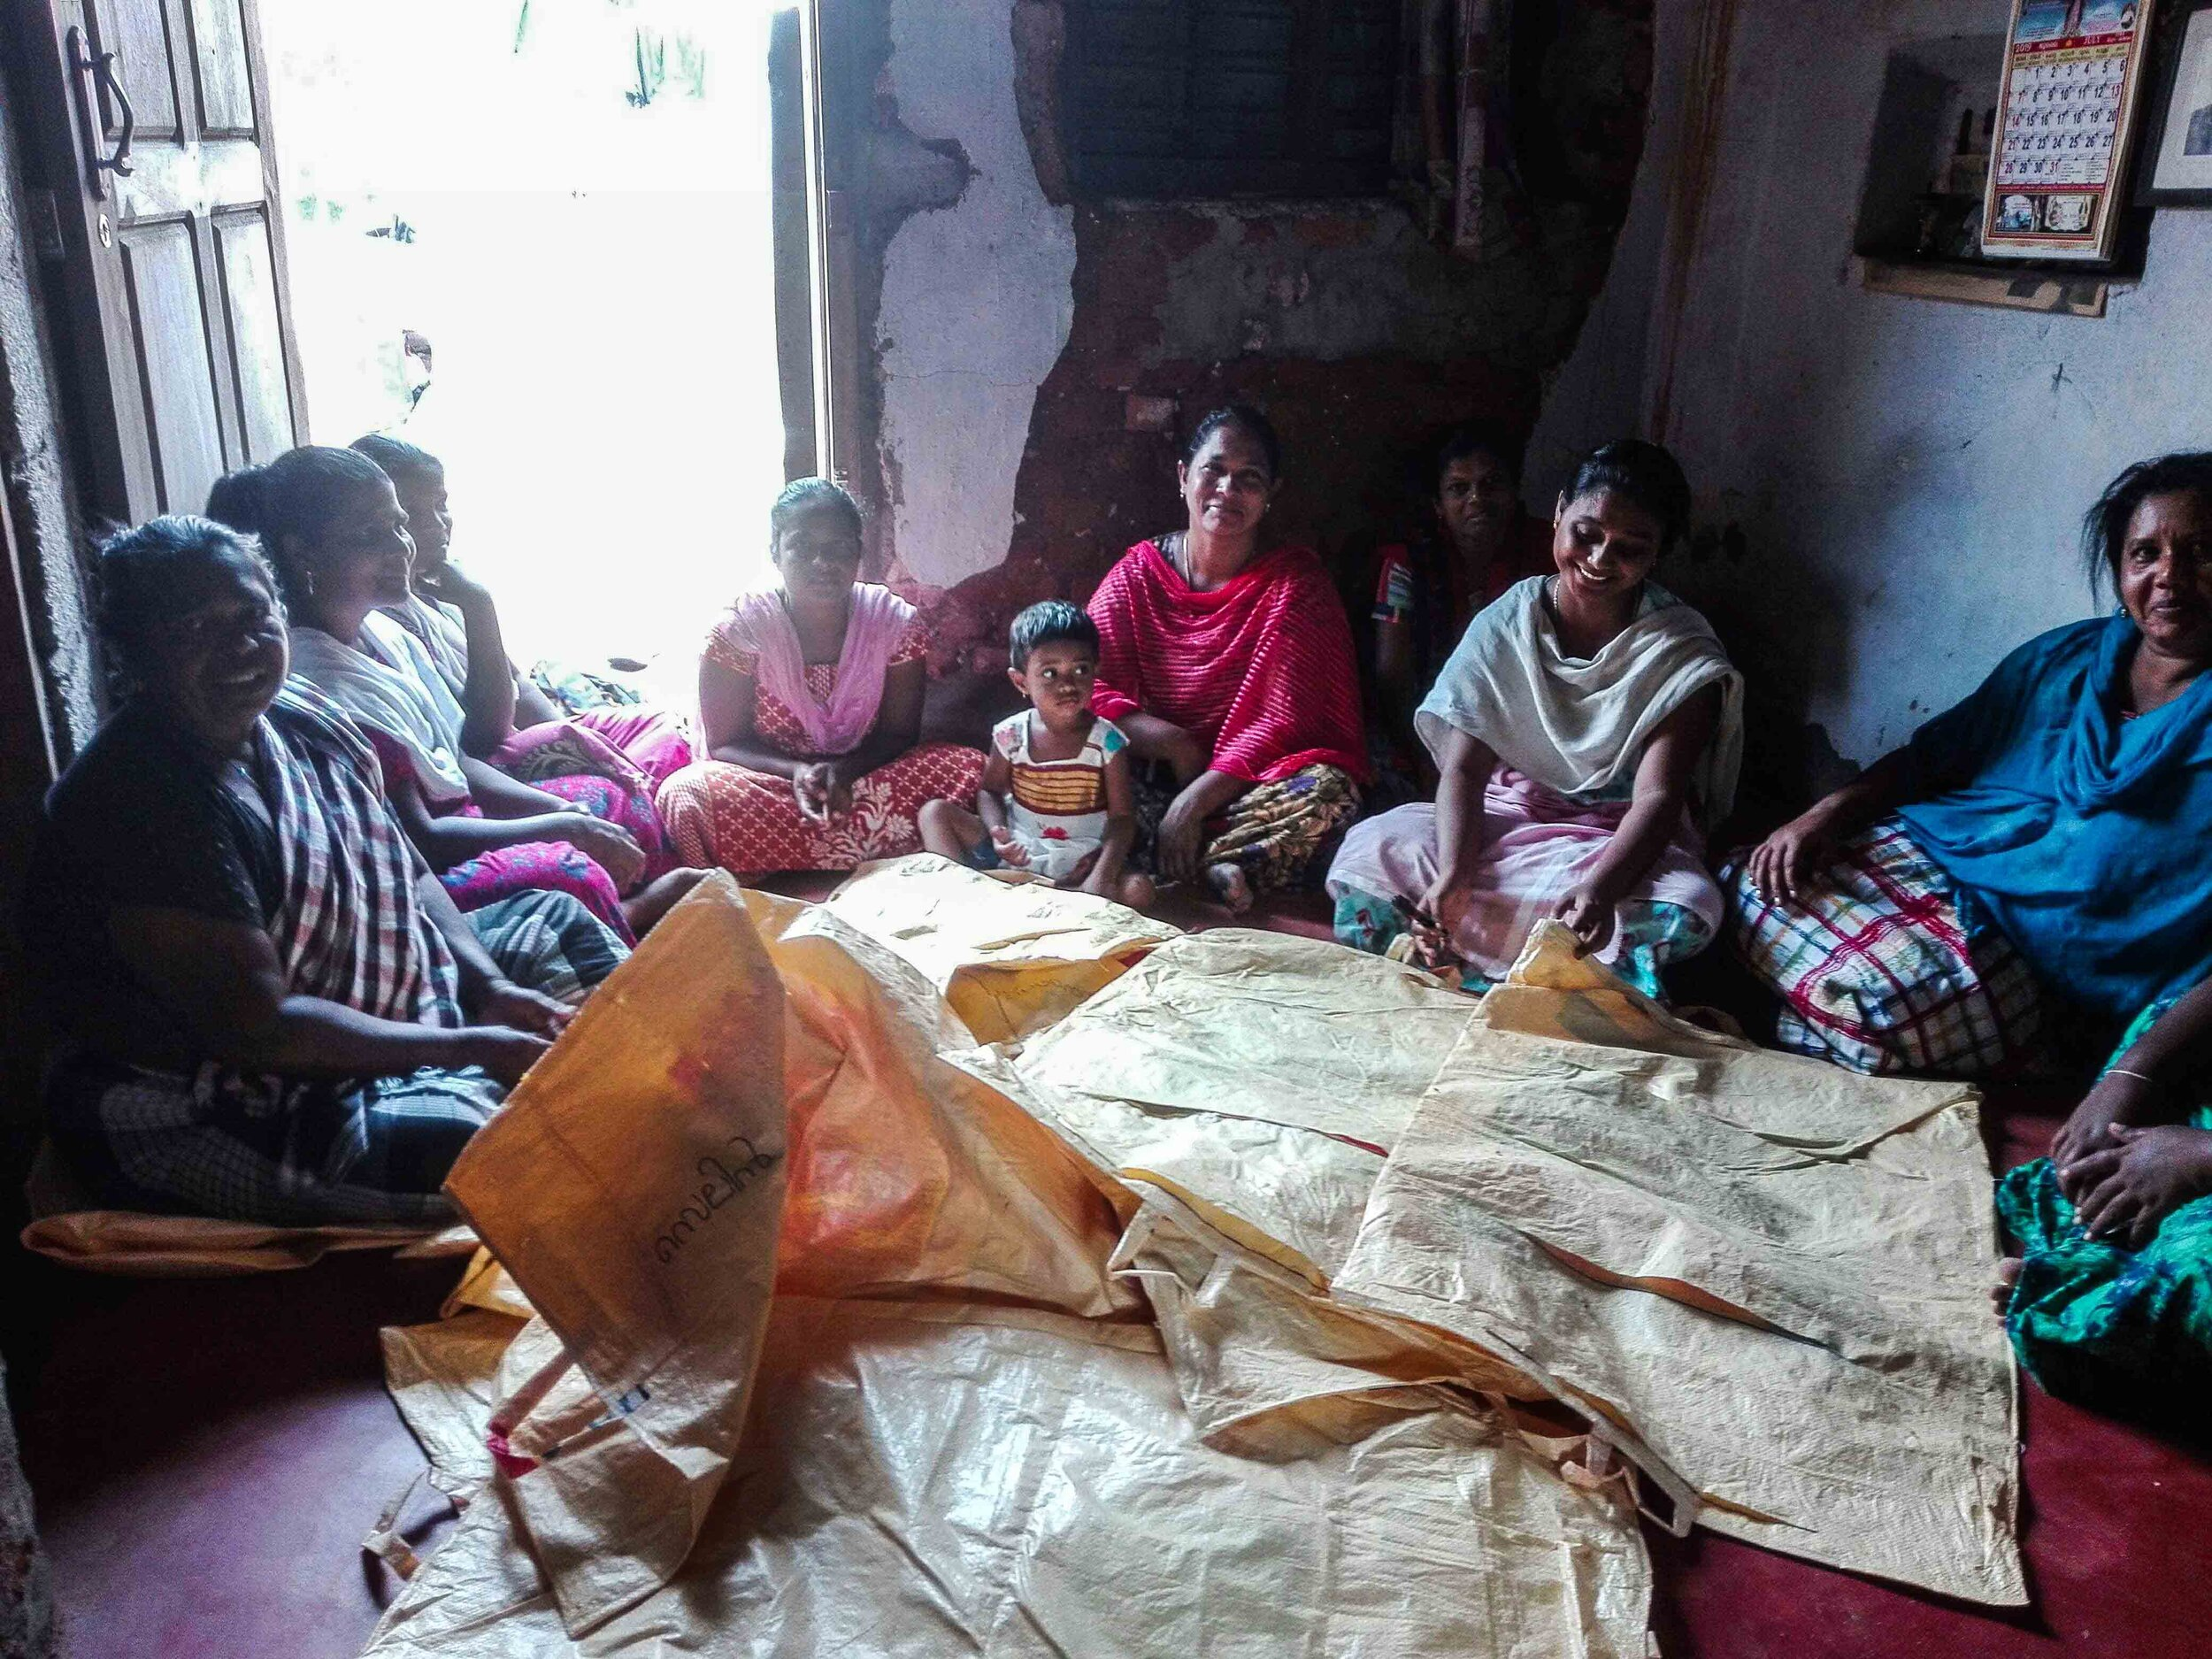 Local women sewing some of the multi-stream waste bags.